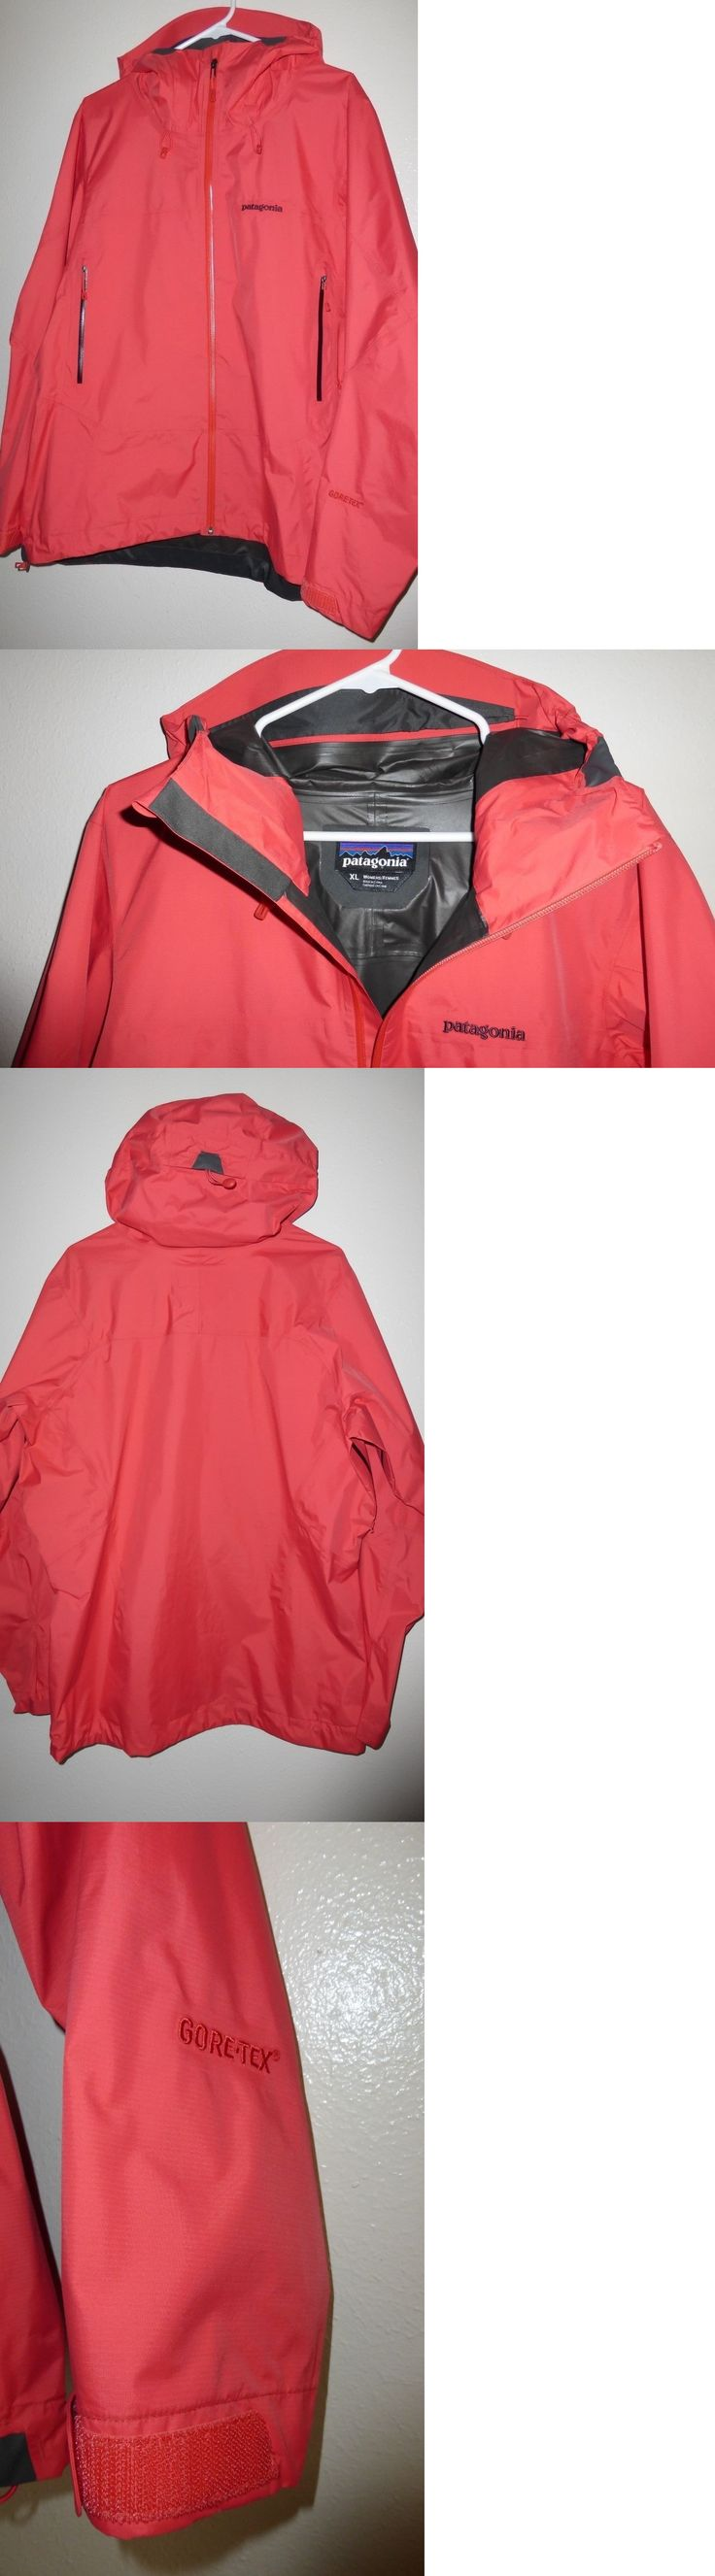 Coats and Jackets 181365: Patagonia Women S Supercell Gore-Tex Jacket, Tmt, Xl -> BUY IT NOW ONLY: $140 on eBay!